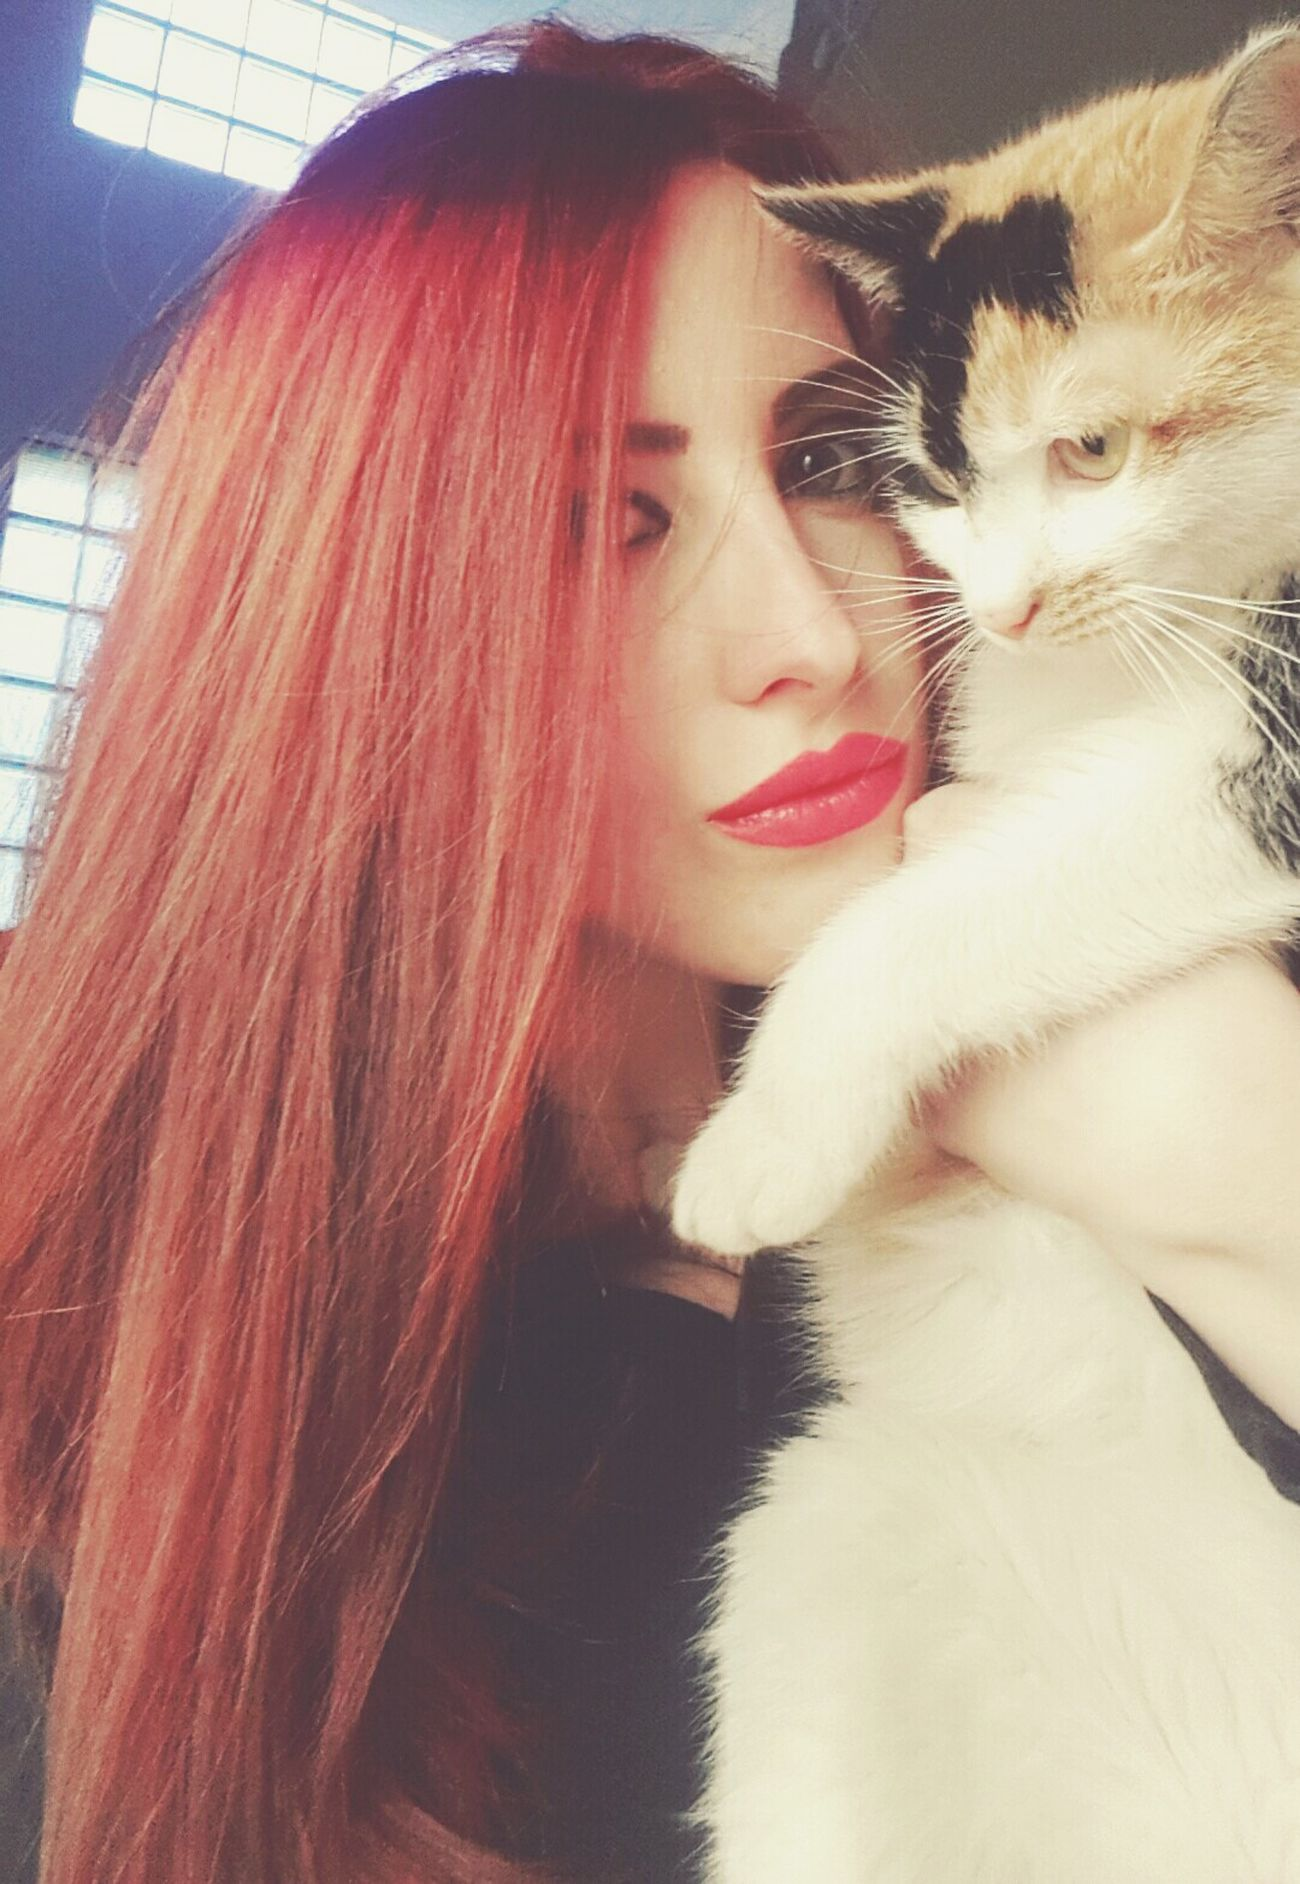 Red Hair That's Me Cat My Cat Cats Red Lips Hello World Check This Out Taking Photos Hanging Out Relaxing Enjoying Life Forever Red I Love It ❤ Self Confidence Home At Home Cheese!